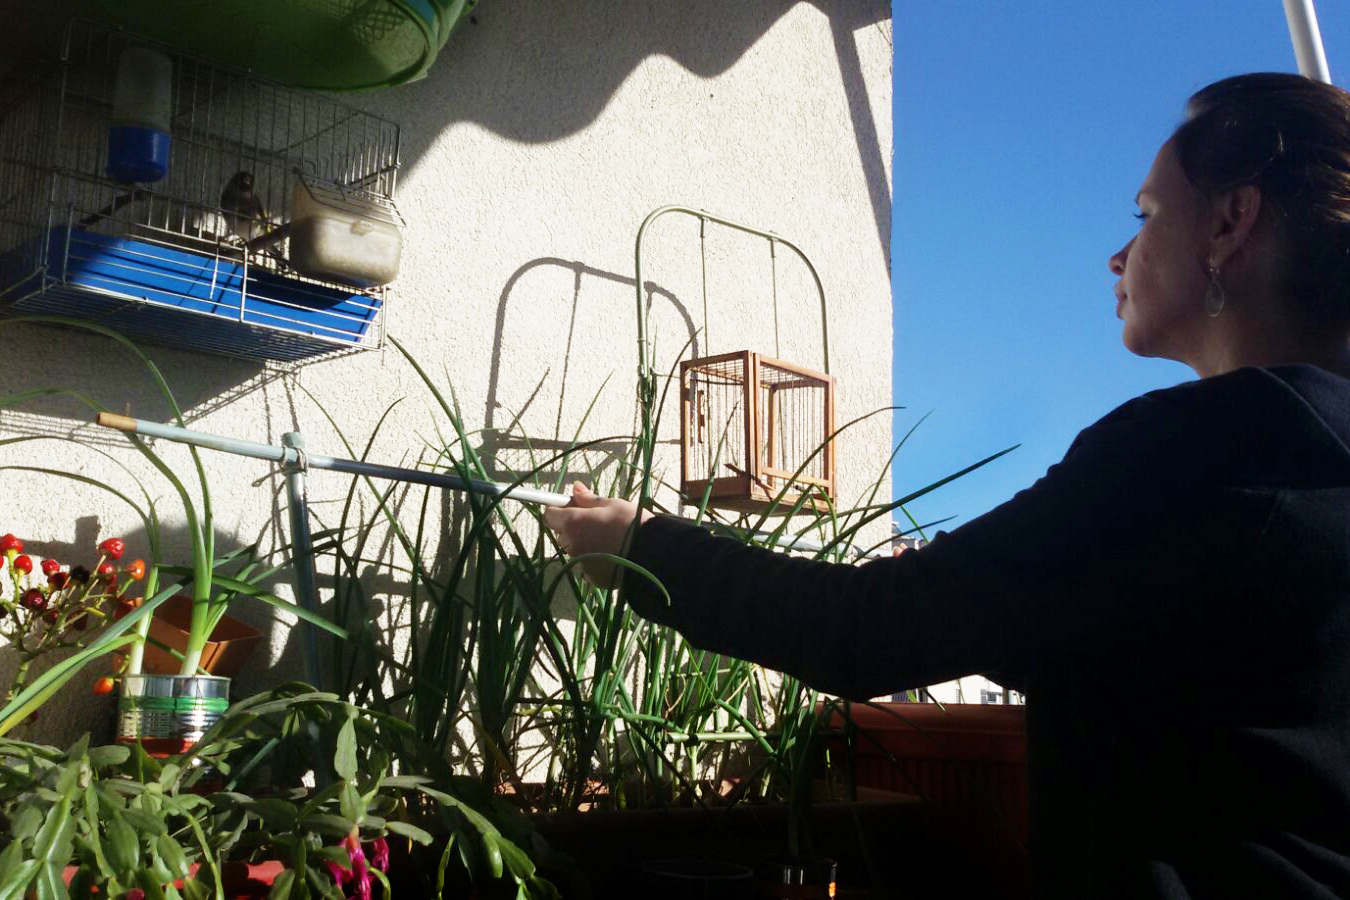 Rezarta, taking care of the products planted in her balcony